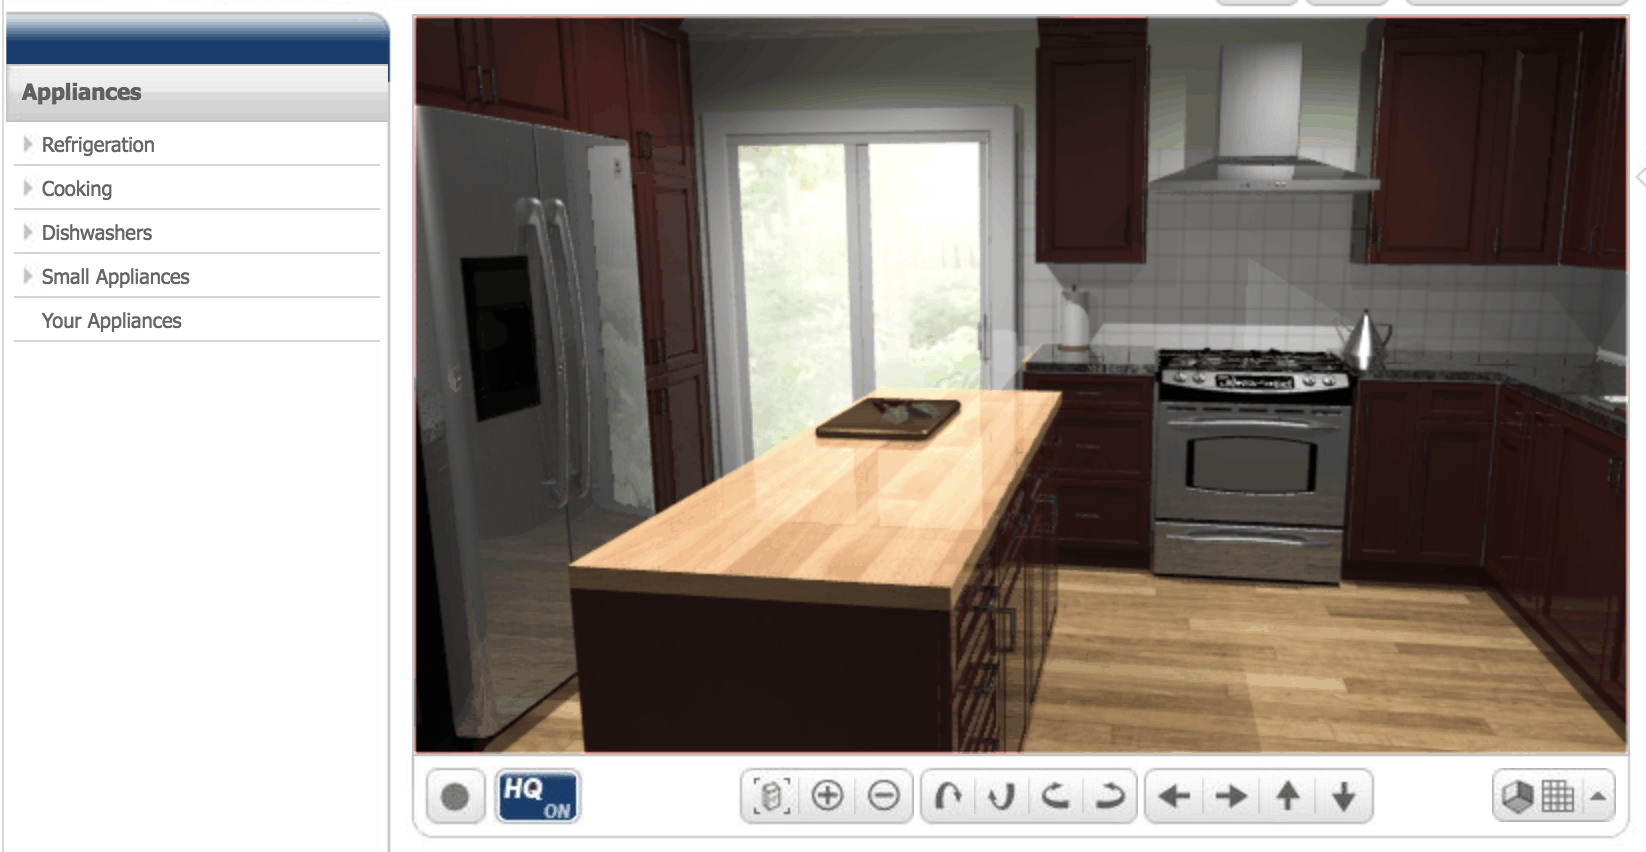 24 Best line Kitchen Design Software Options in 2021 Free & Paid